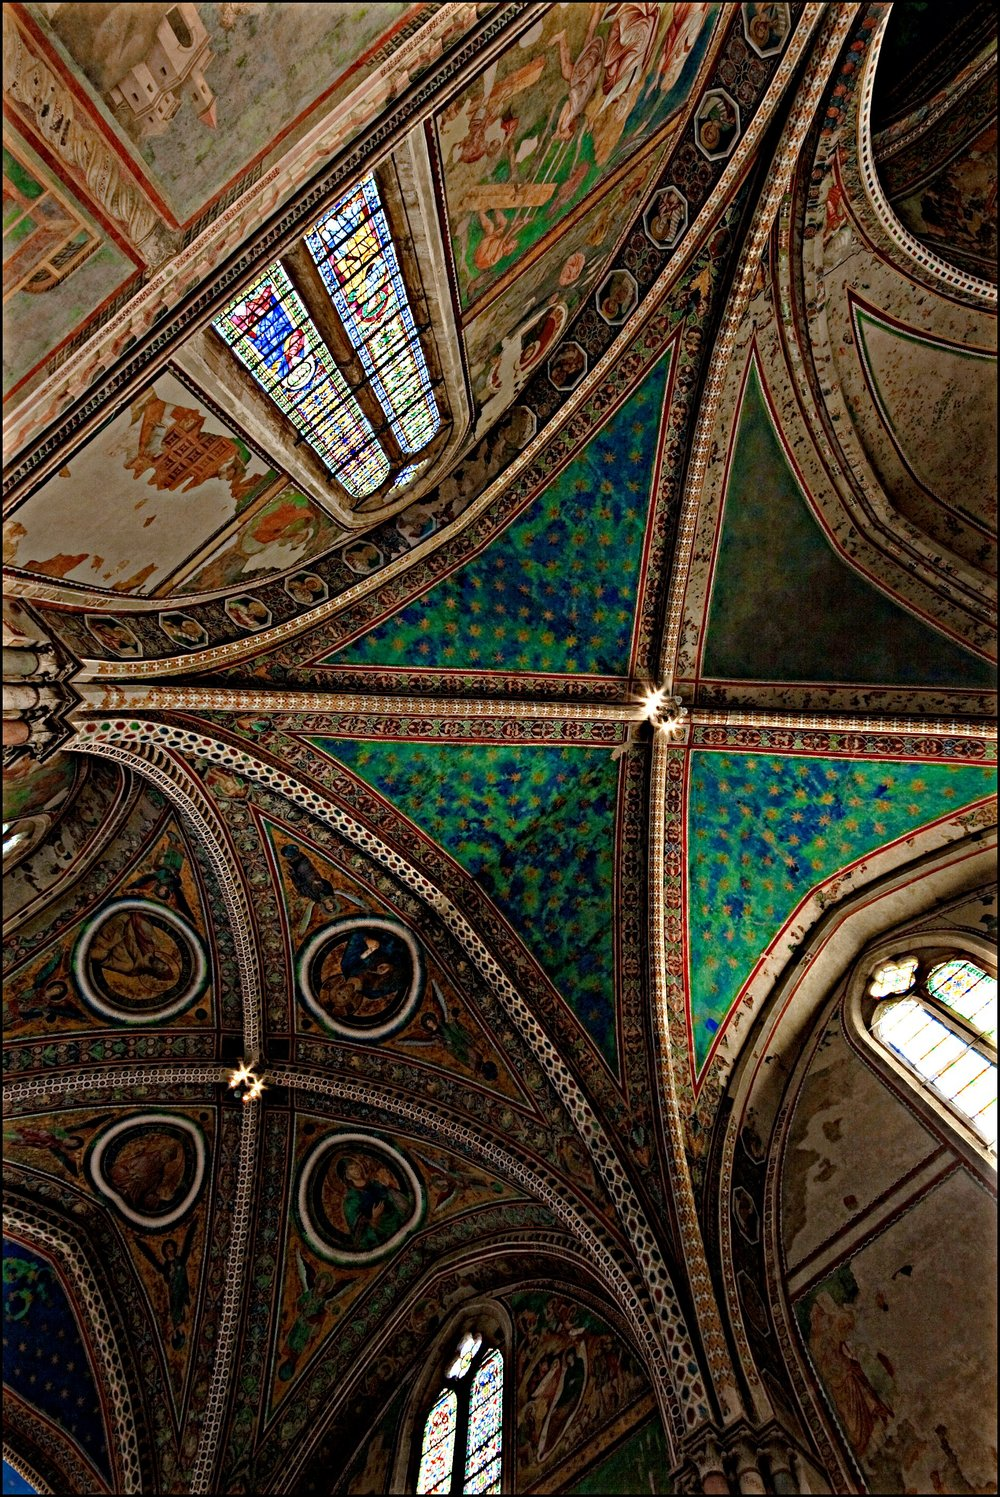 Photo of the ceiling of the Upper Basilica of Saint Francis, Assisi. Photo by permission of the photographer, Nadia d'Agaro — at https://www.flickr.com/photos/nadiadagaro/. This photo can be found in her album on Umbria — at https://www.flickr.com/photos/nadiadagaro/albums/72157627135961005. Grazie, Nadia!